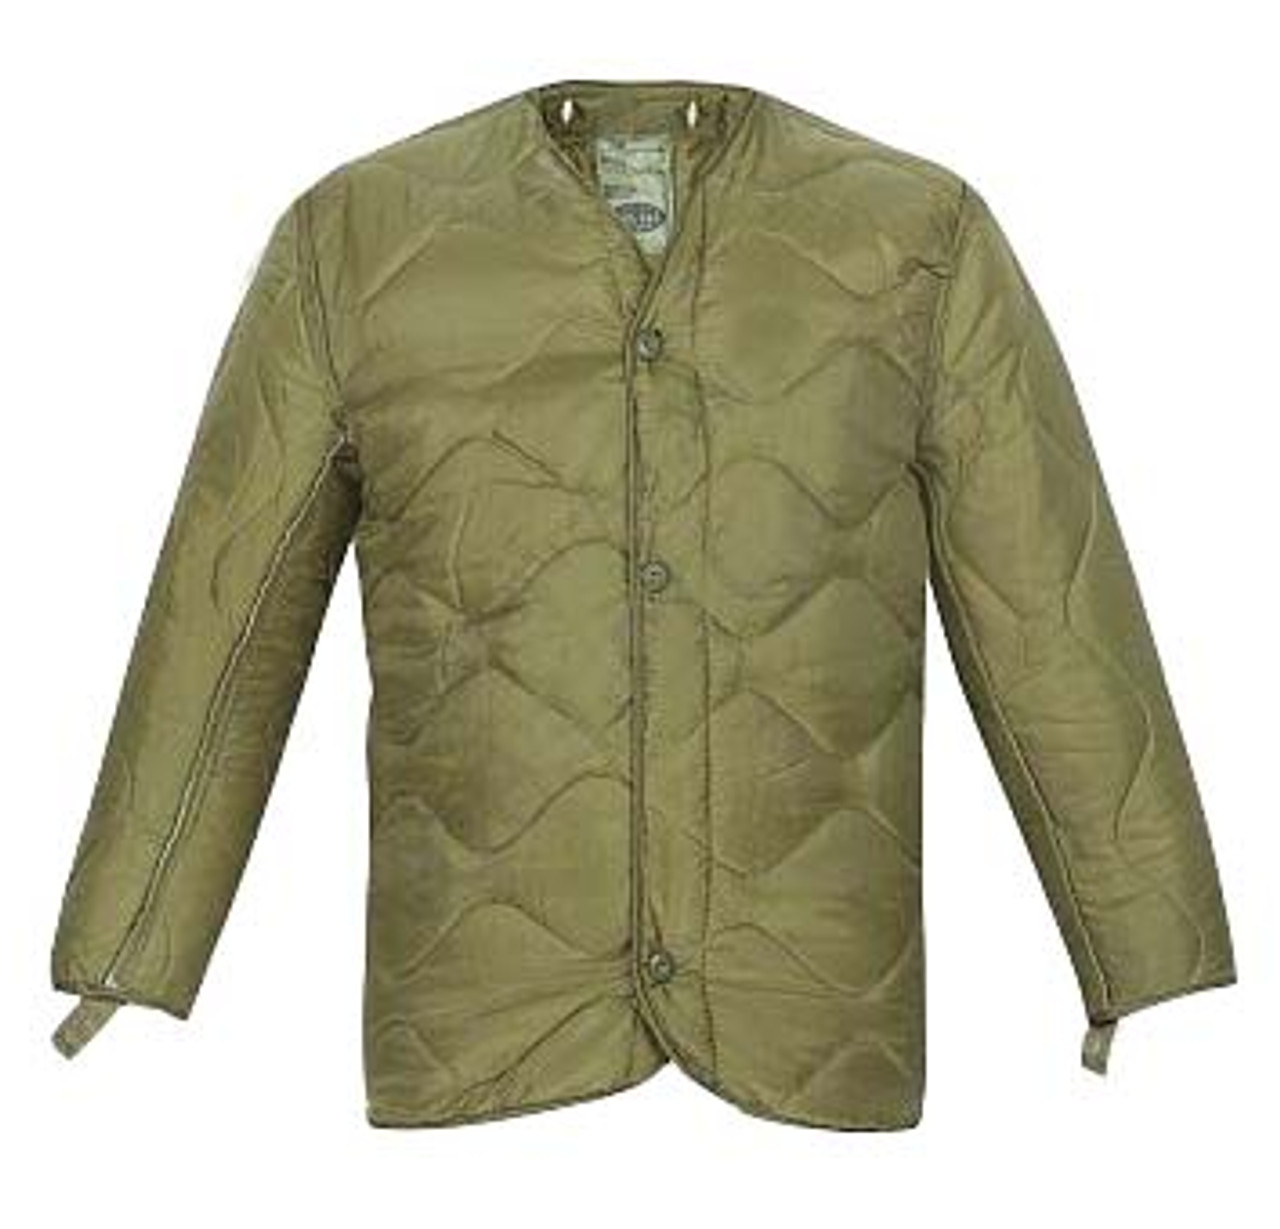 MIL-TEC Bw M65 Flectarn Camo Jacket With Liner